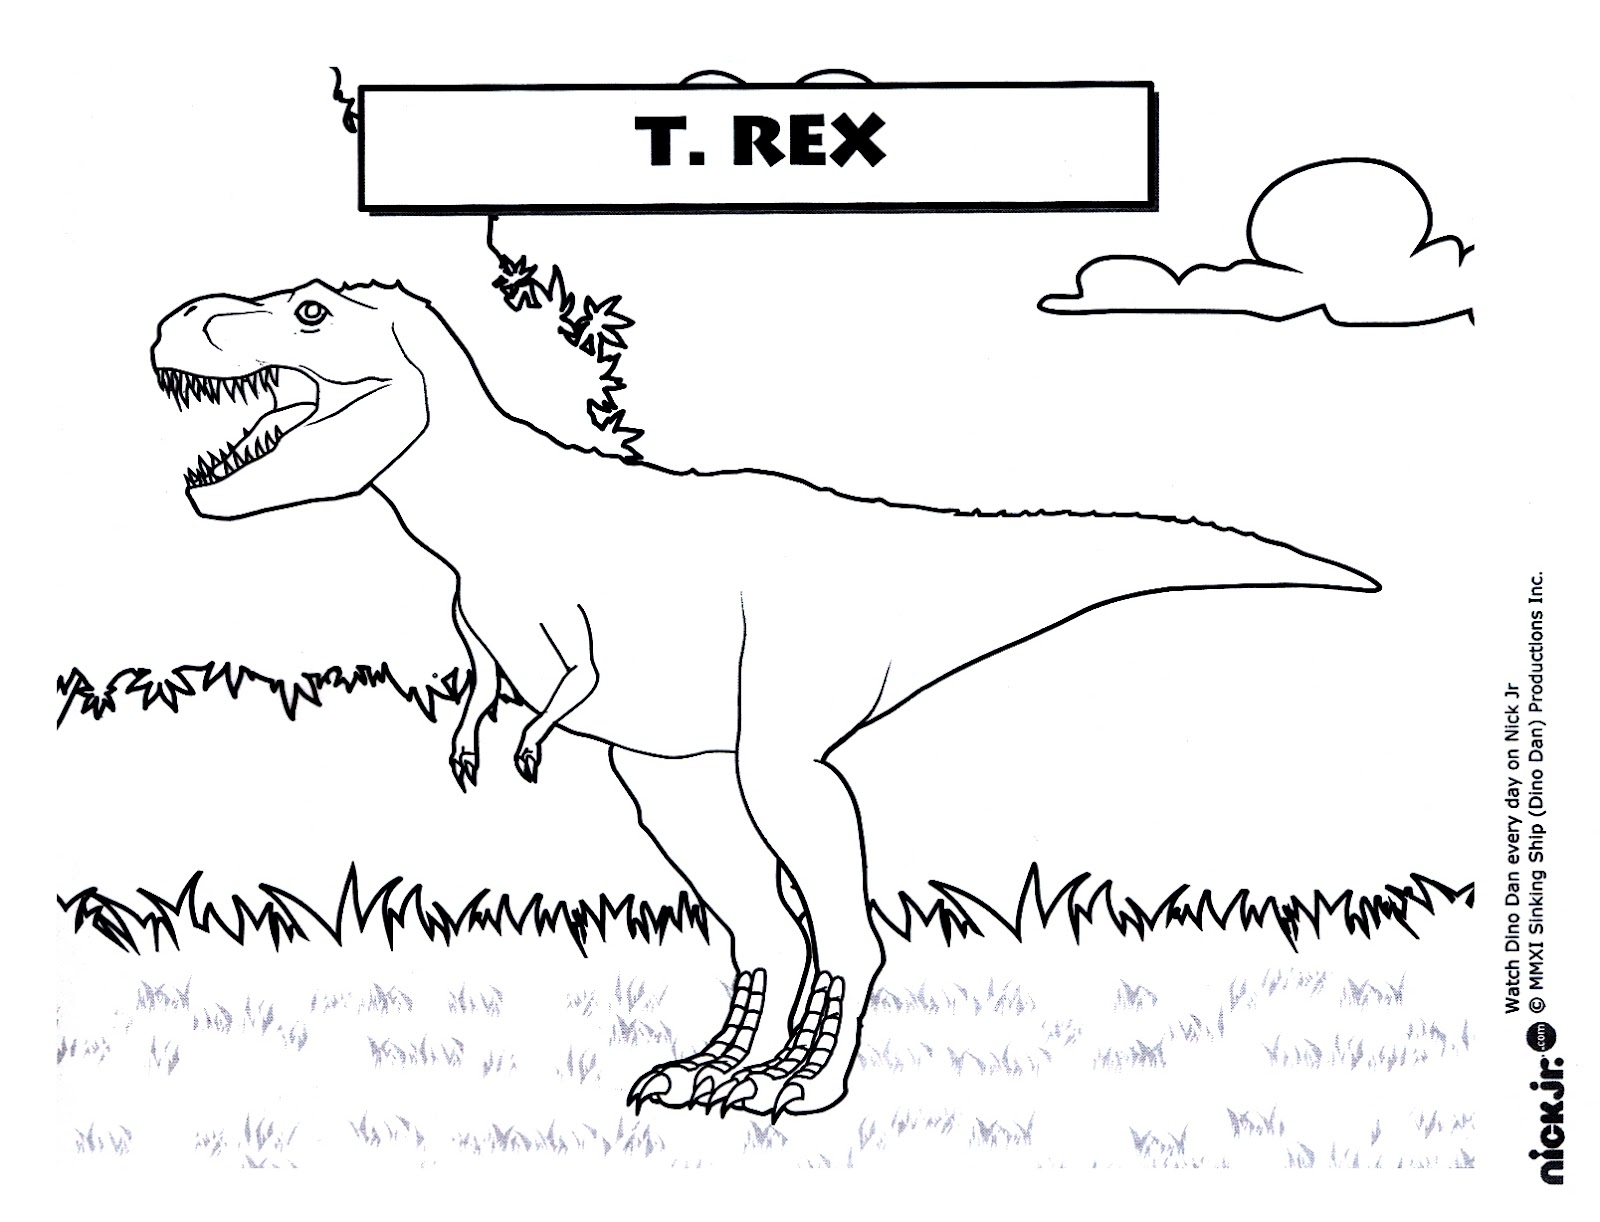 27 Tyrannosaurus Rex Coloring Page Printable | FREE COLORING PAGES